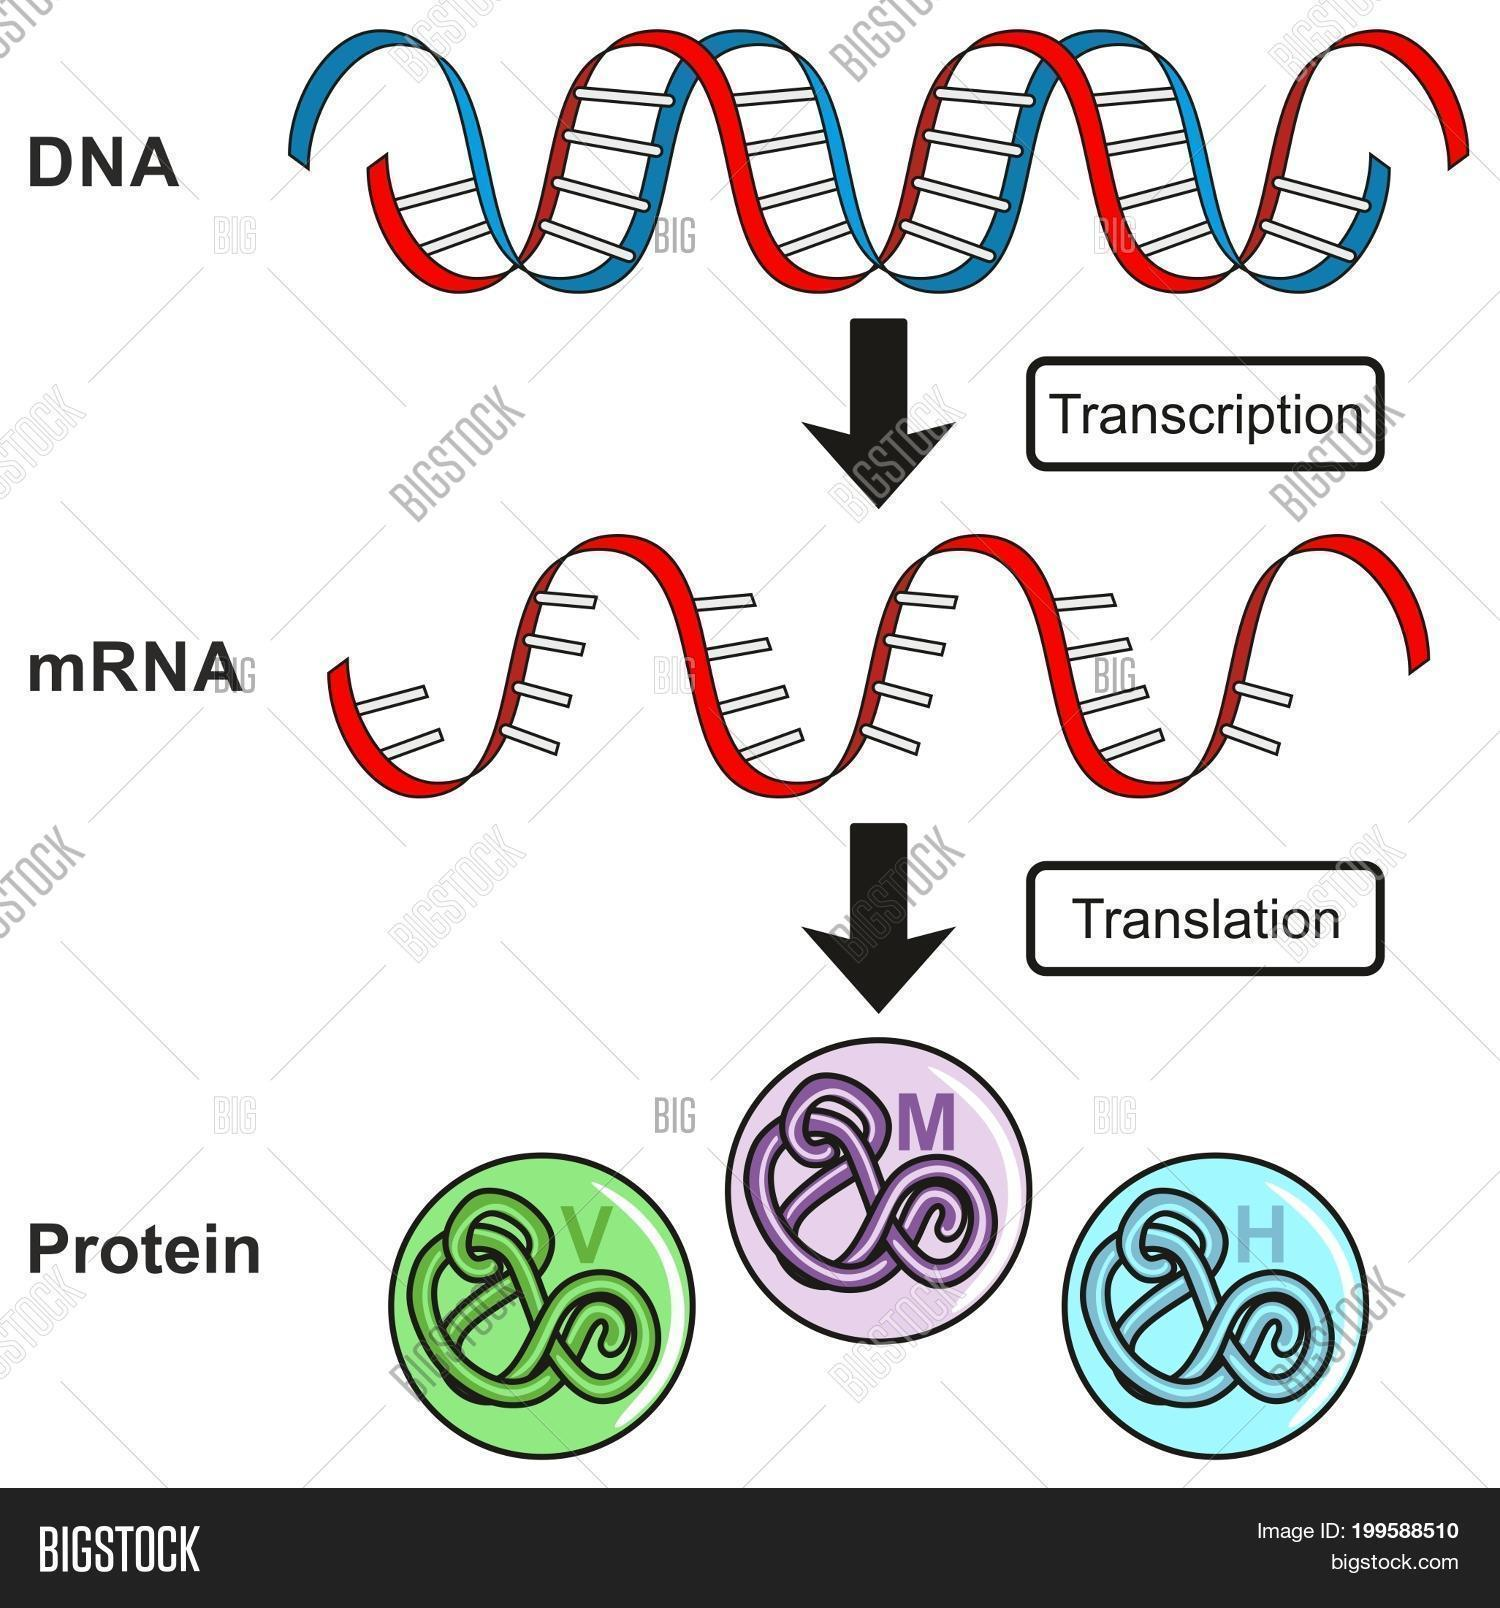 Central dogma gene image photo free trial bigstock central dogma of gene expression infographic diagram showing the process of transcription and translation from dna ccuart Choice Image